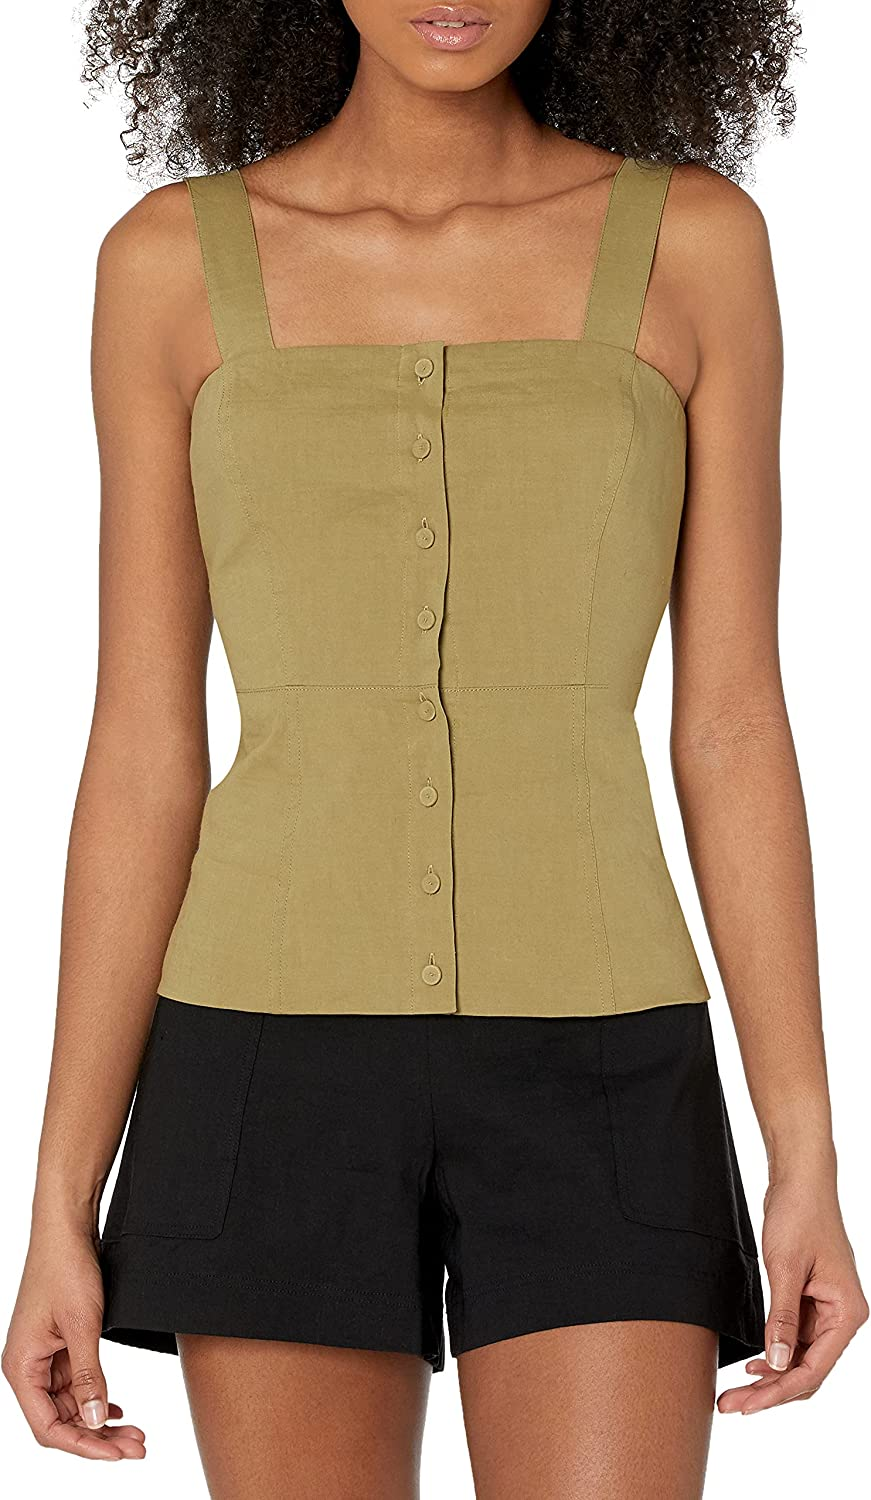 Theory Women's Button Front Shoulder Straps Cami